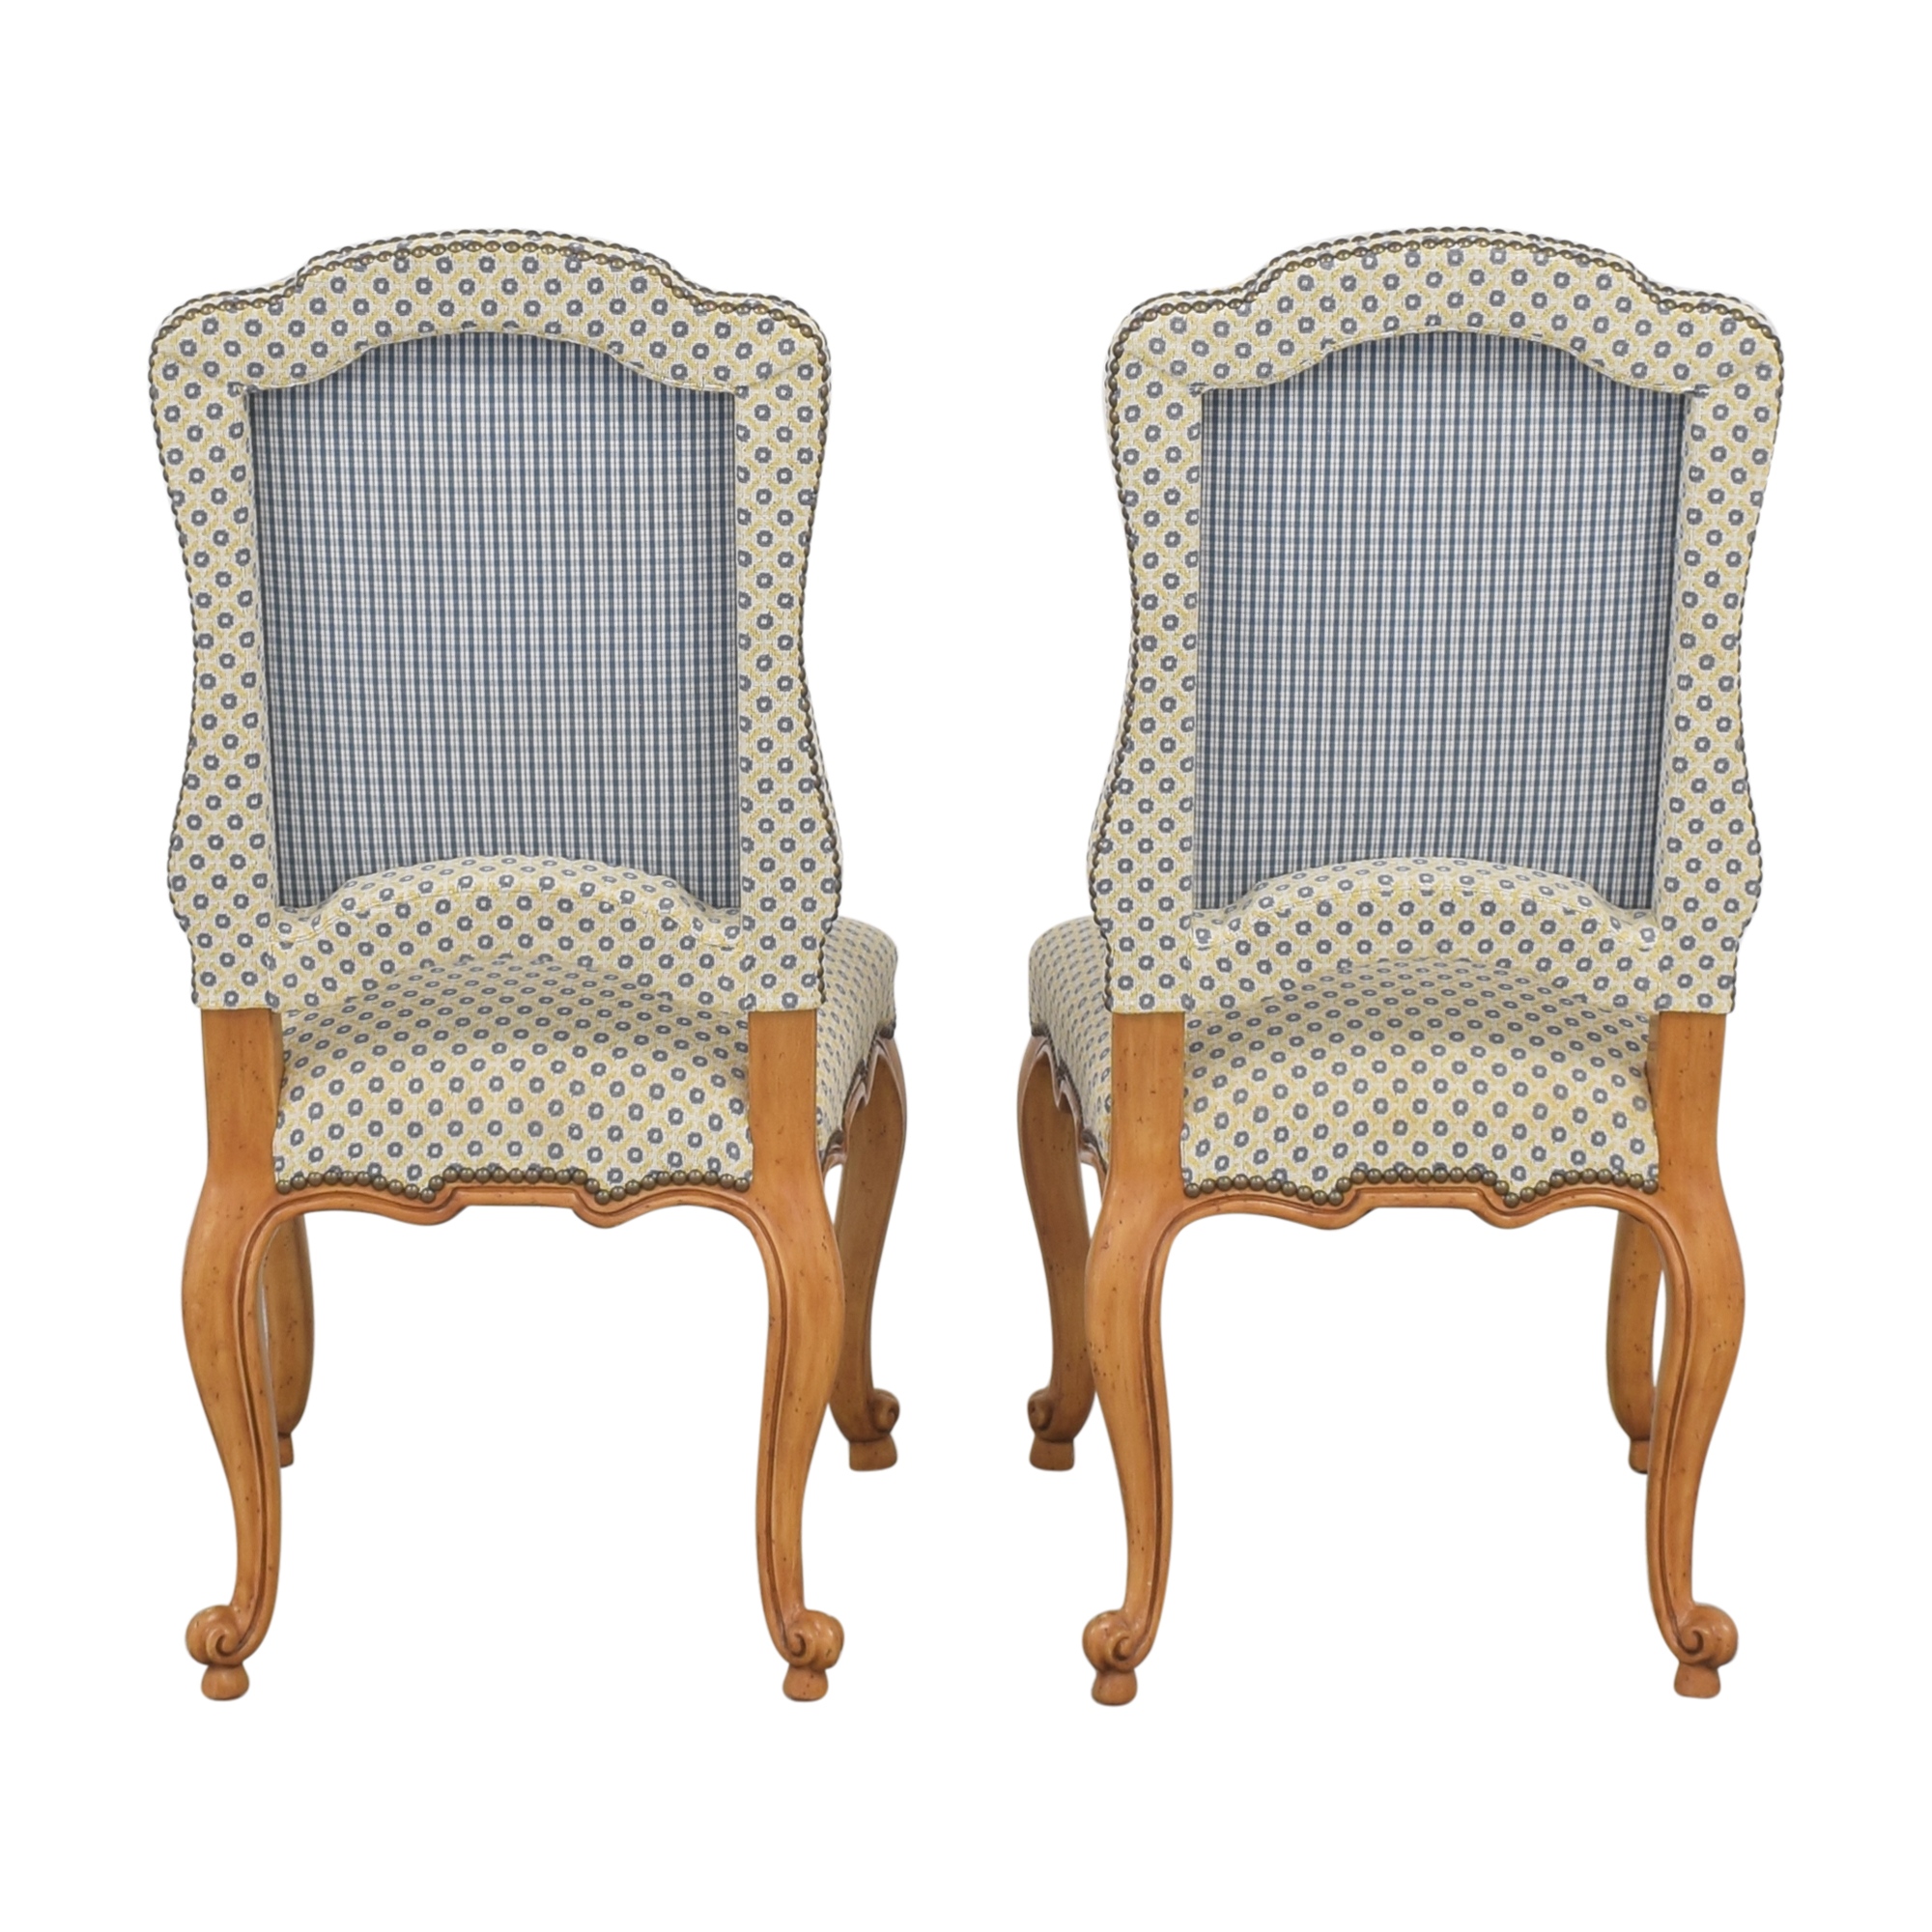 Minton-Spidell Minton-Spidell Regence Dining Side Chairs second hand